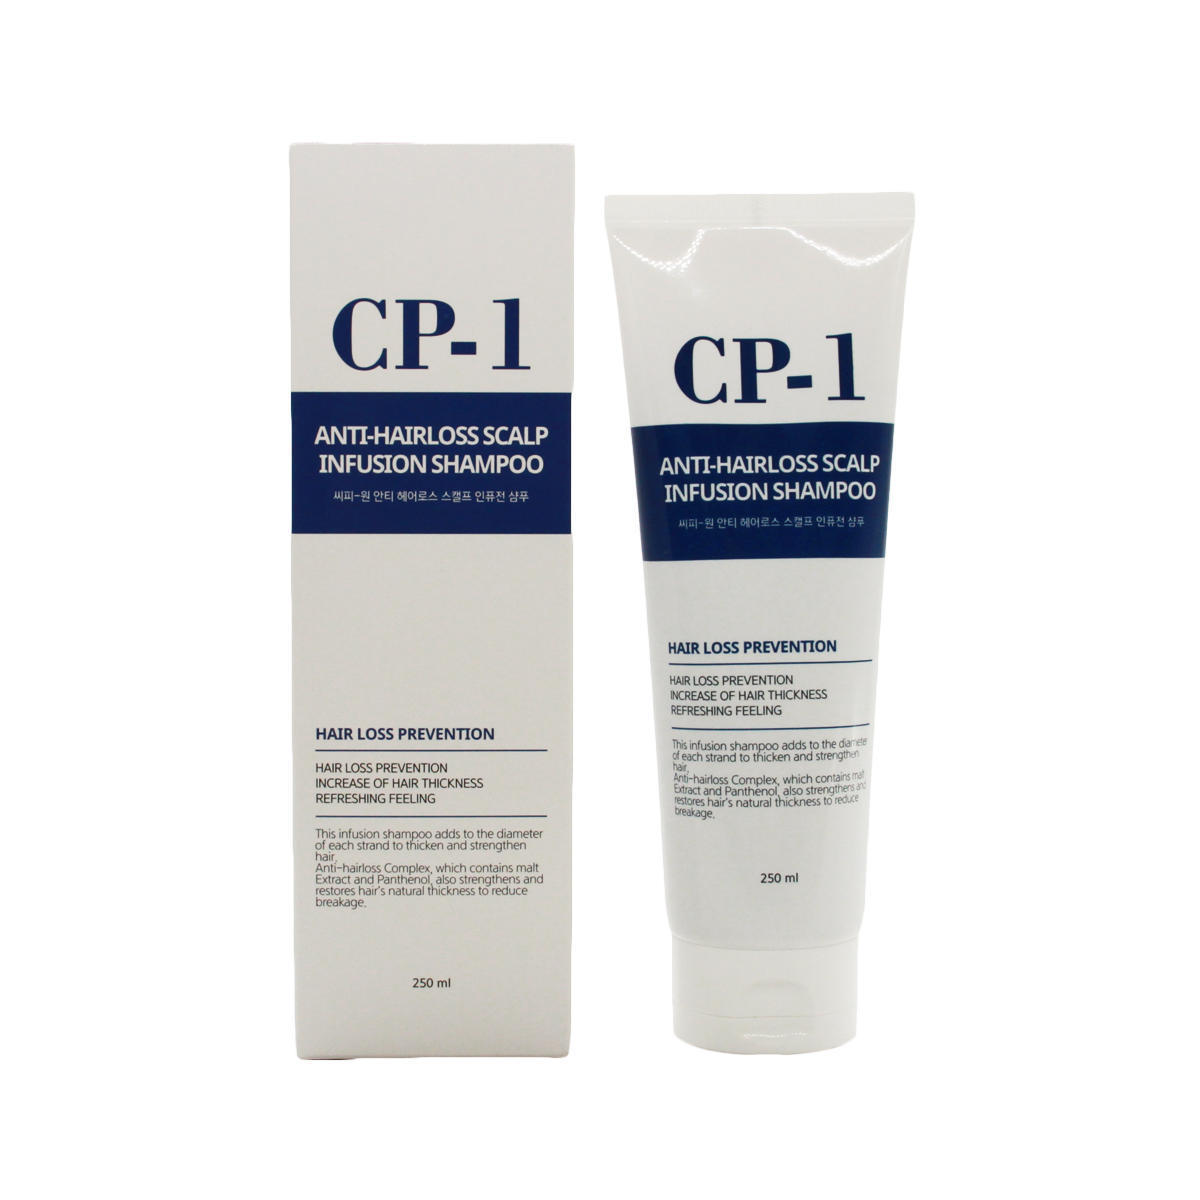 Esthetic House CP-1 Anti-hairloss Scalp Infusion Shampoo